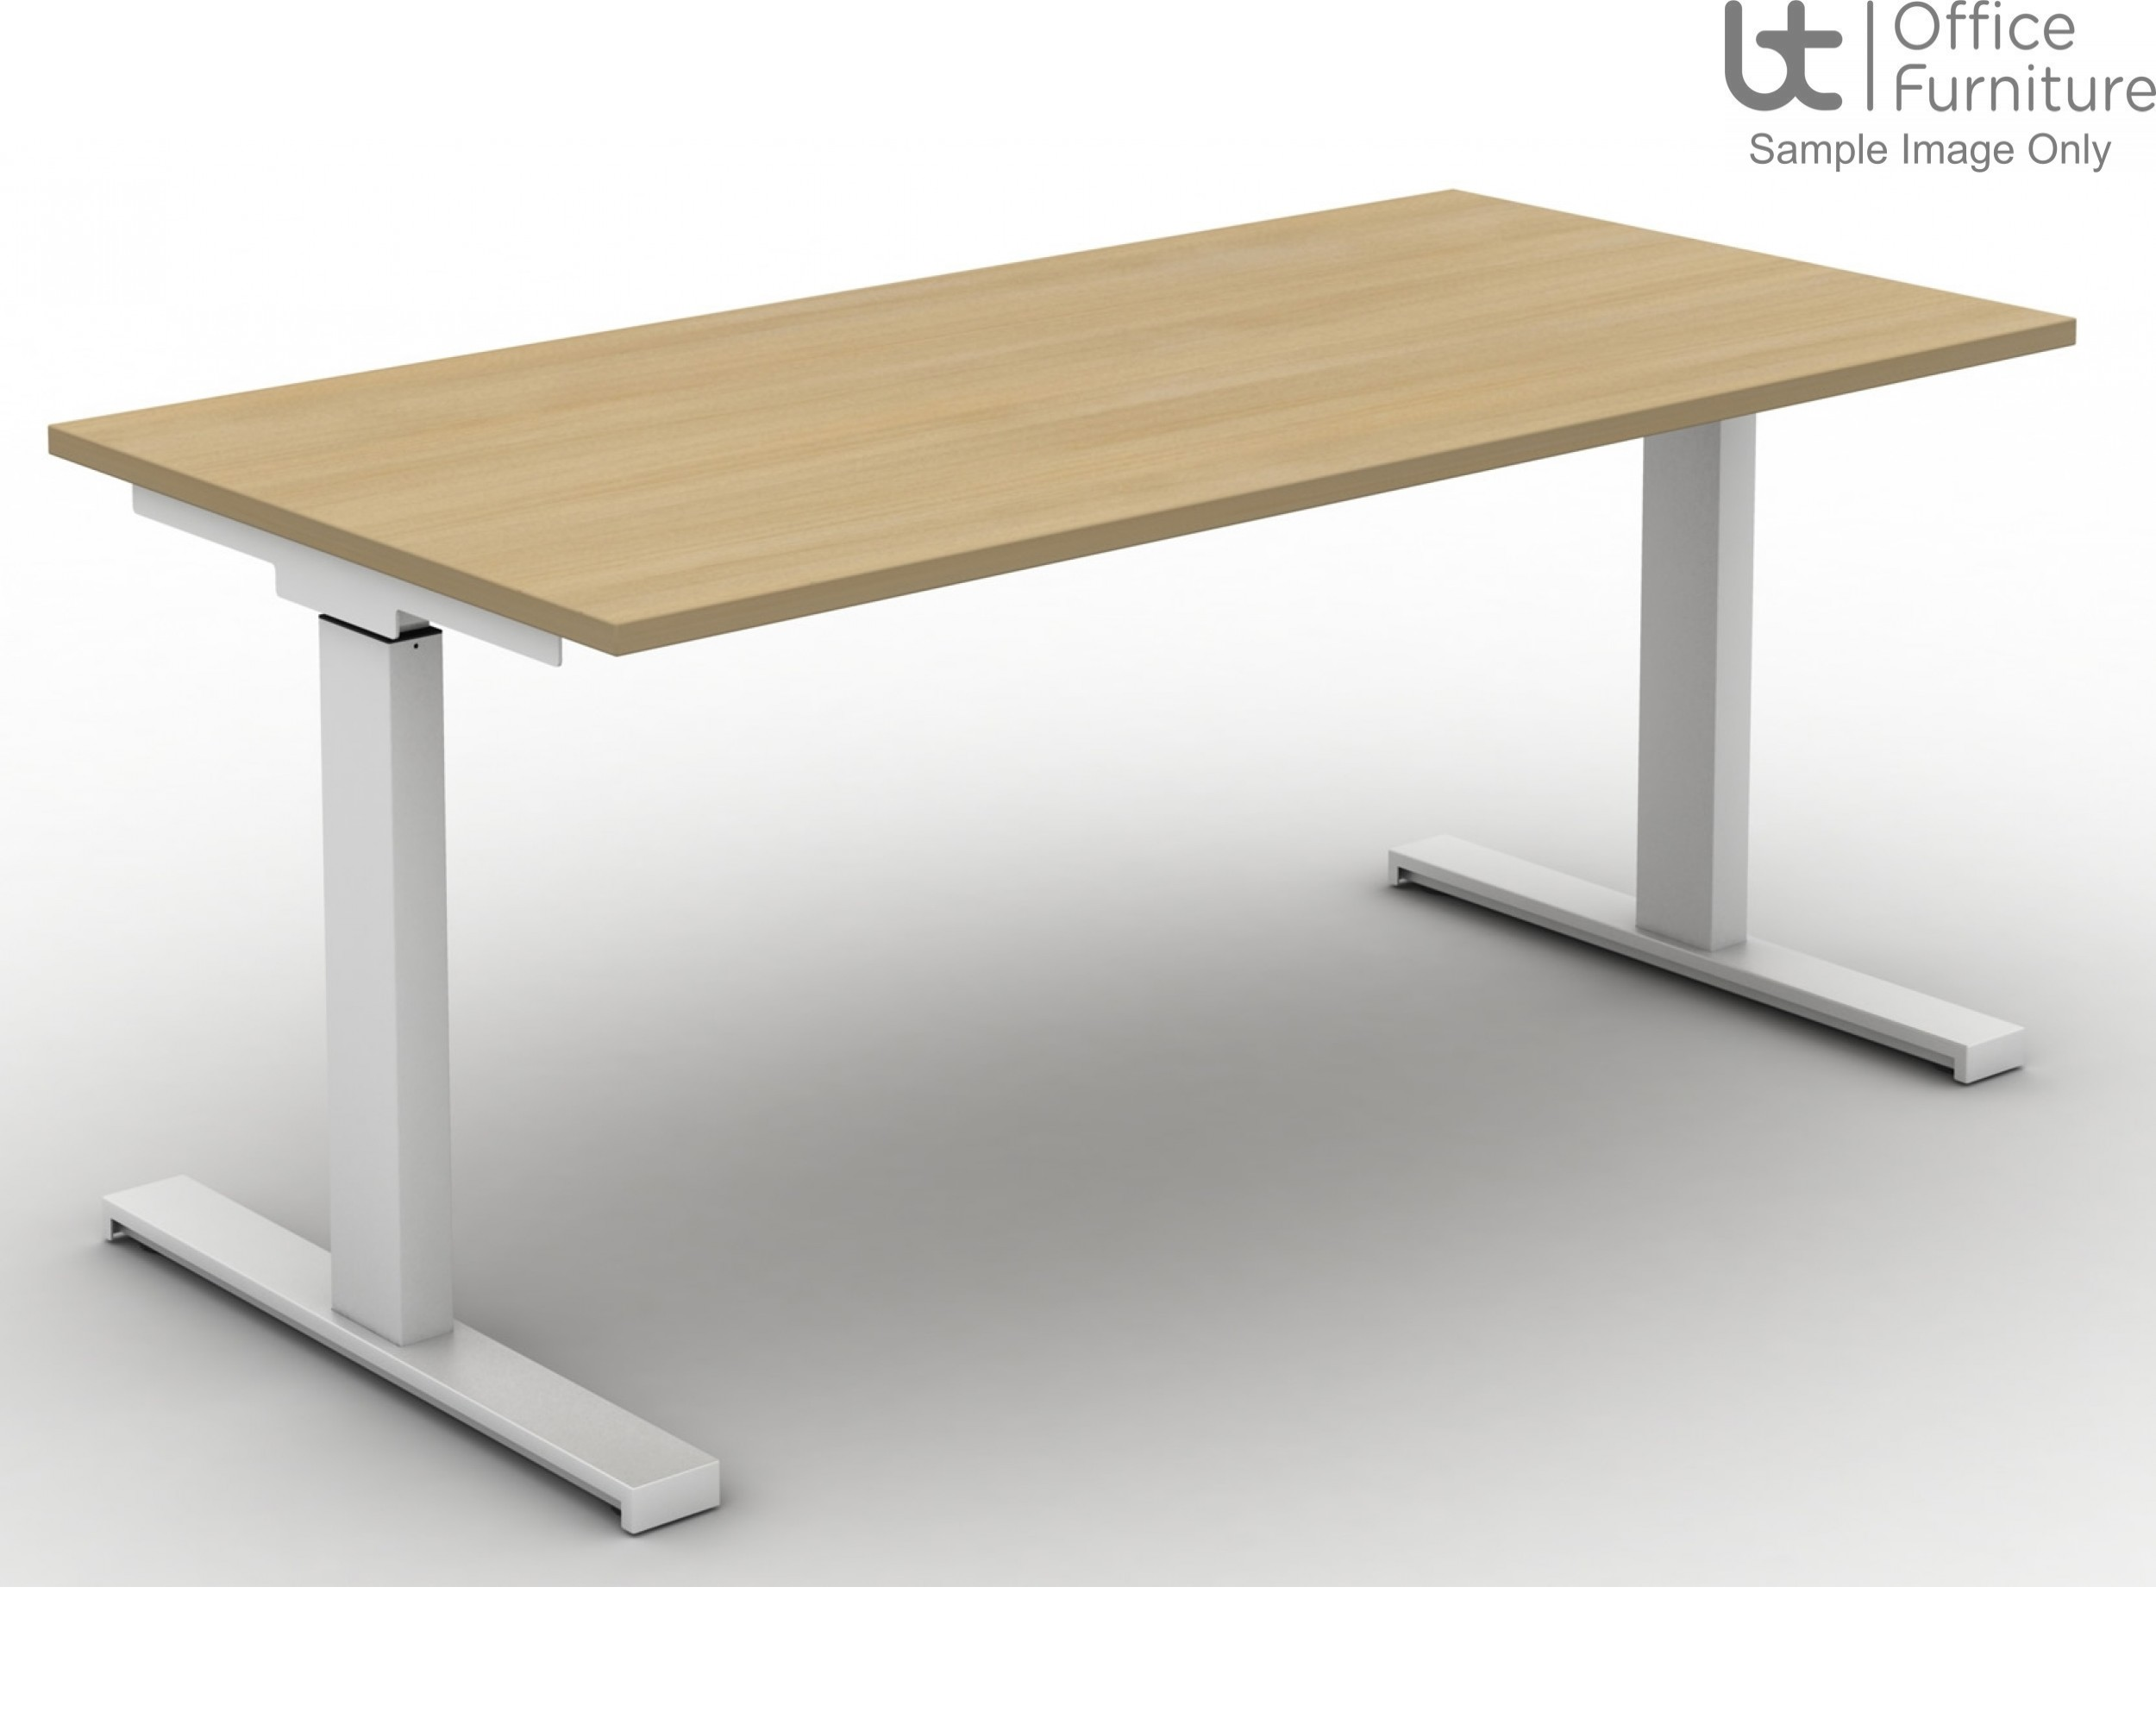 Move Set and Forget Rectangular Height Adjustable Sit-Stand Desk - Tops Square Corners